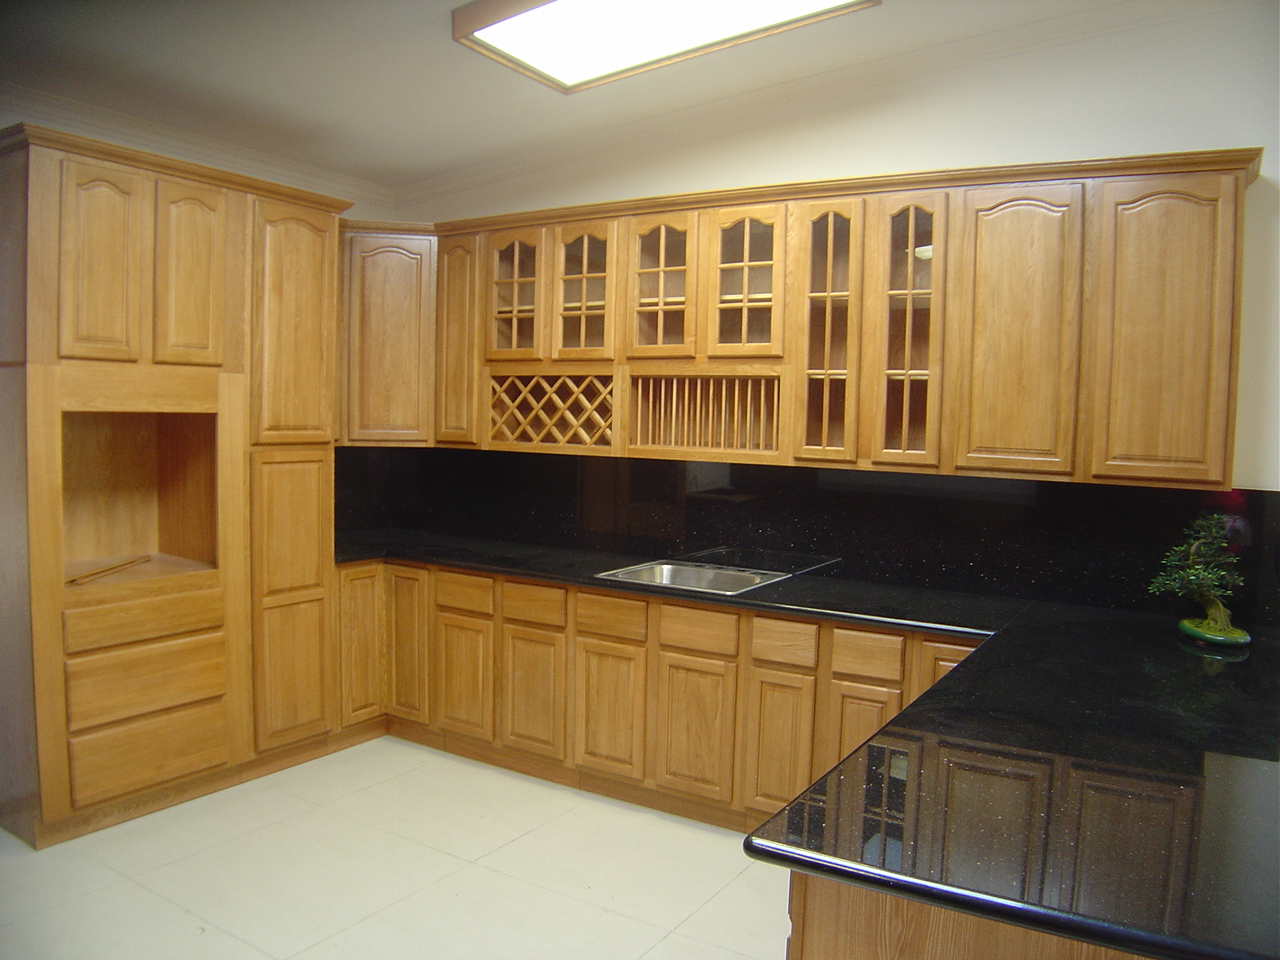 Oak kitchen cabinets for your interior kitchen minimalist modern design kitchen design ideas Kitchen design with light oak cabinets